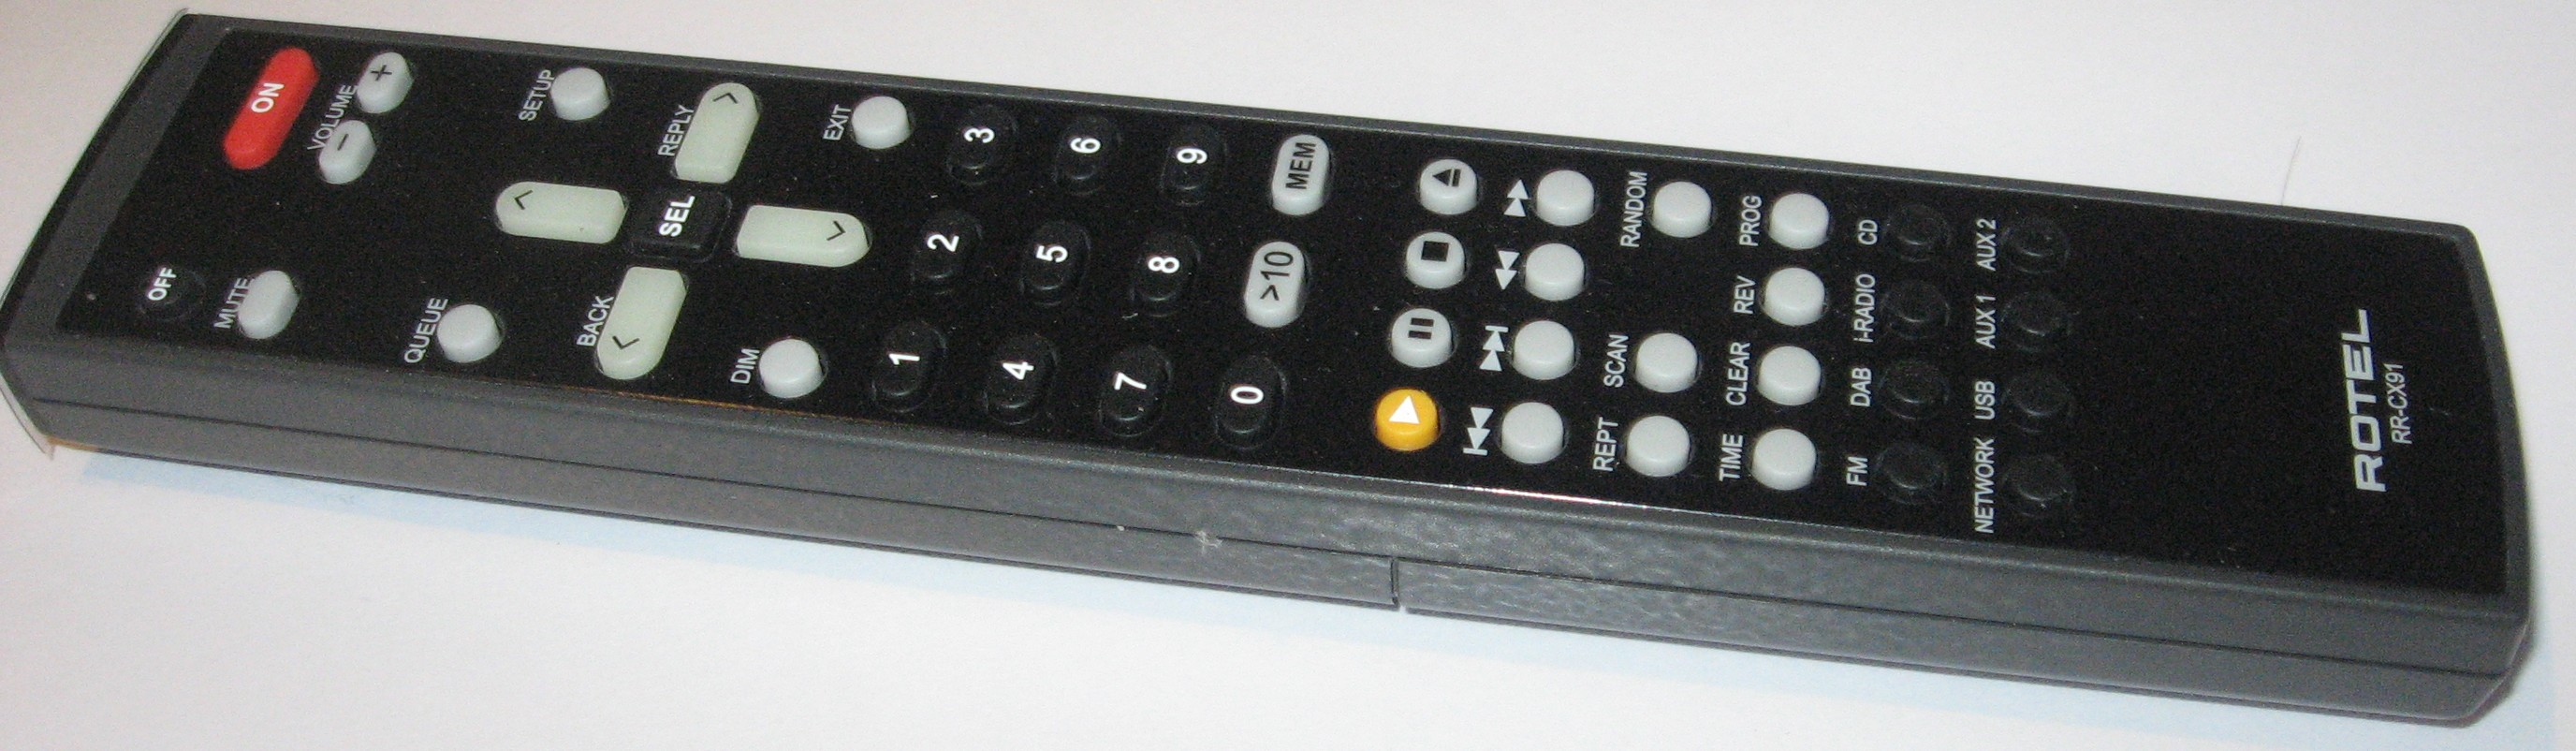 Rotel RCX-1500 CD receiver remote control